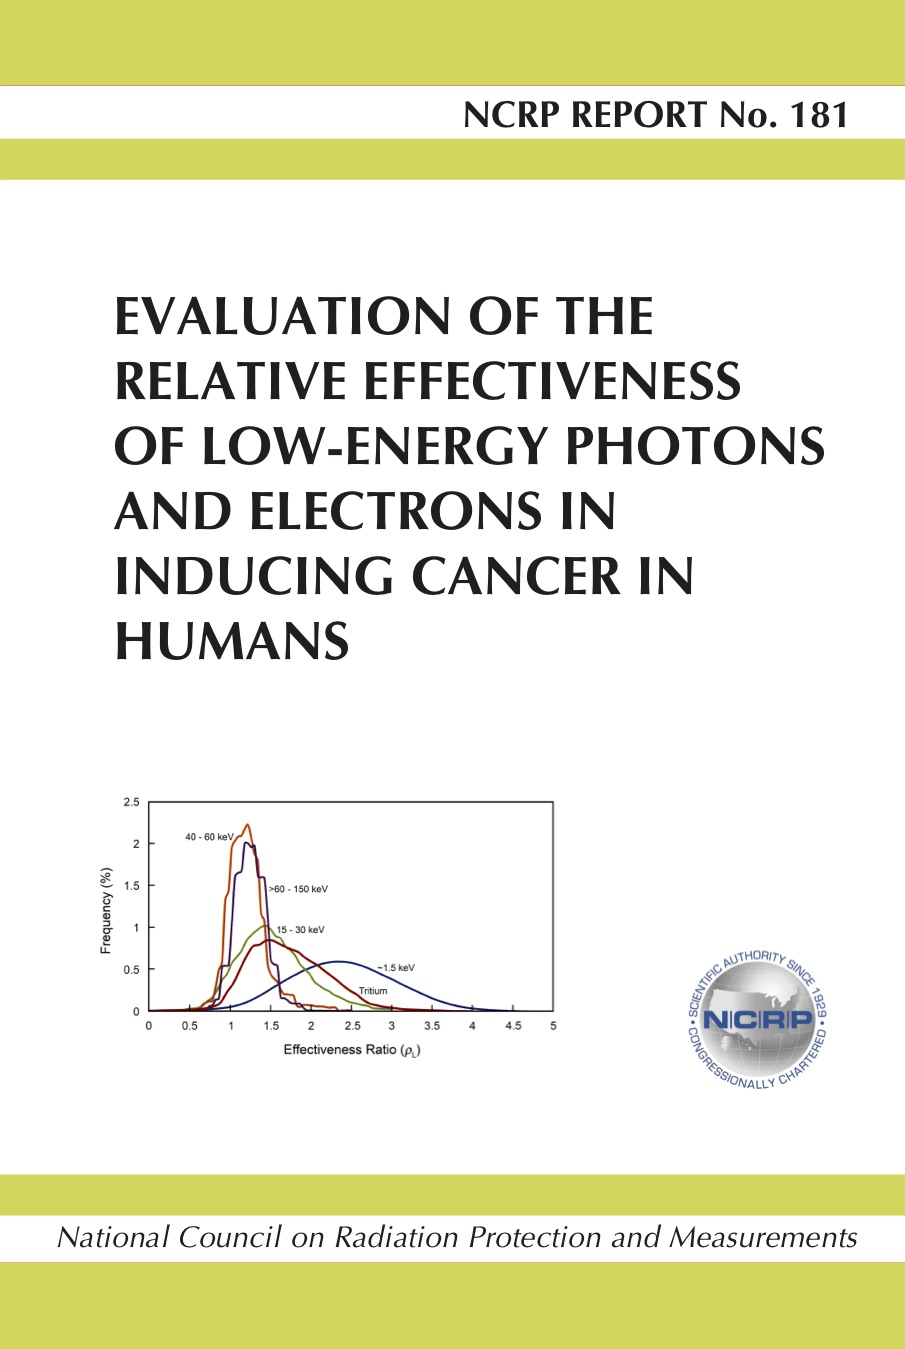 Report No. 181 - Evaluation Of The Relative Effectiveness Of Low-Energy  Photons And Electrons In Inducing Cancer In Humans (2018)